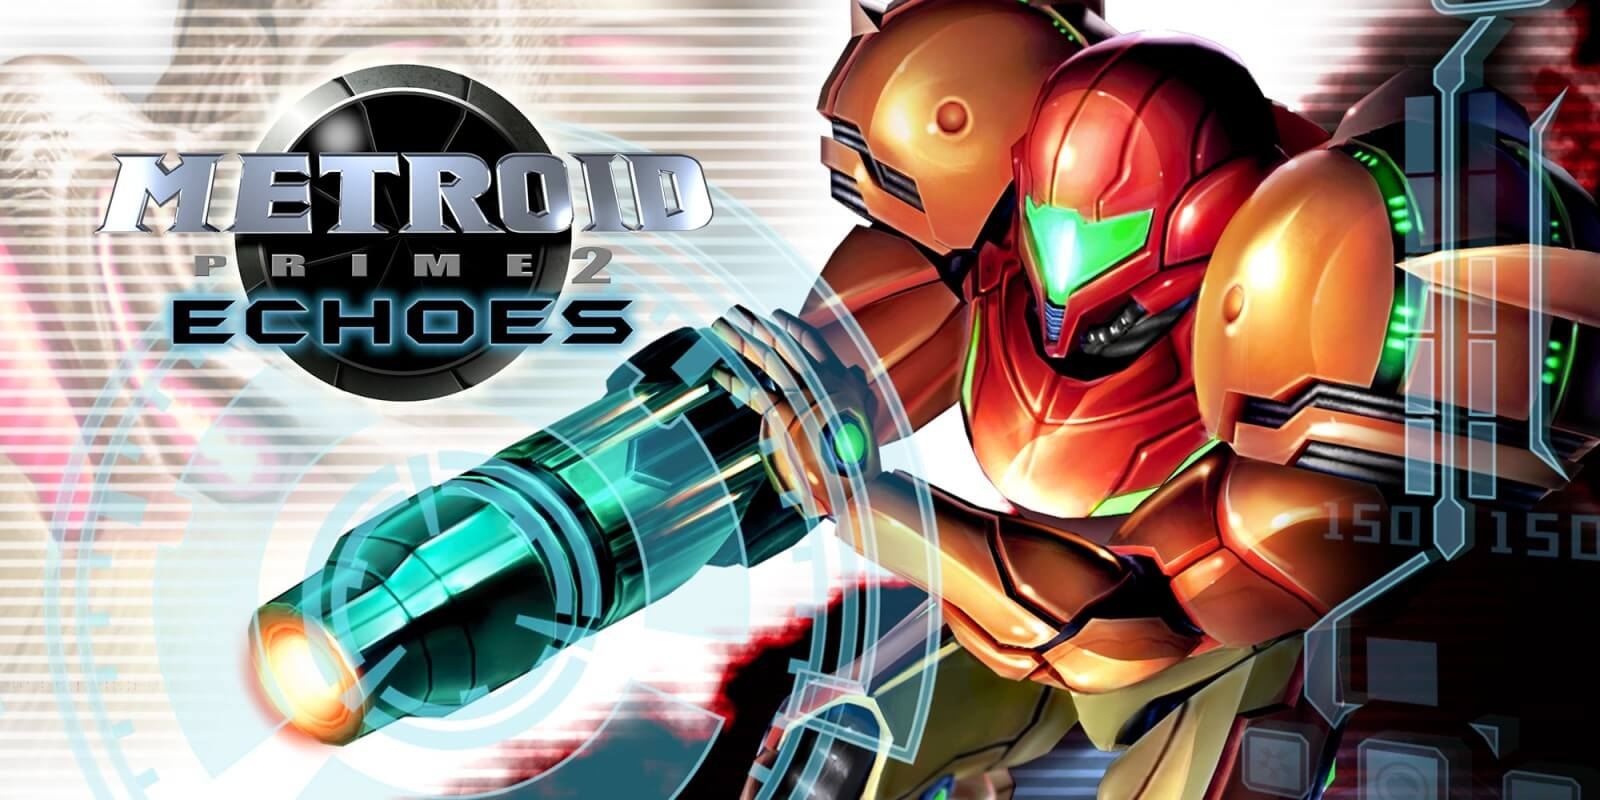 You can now play the Metroid Prime games on the PC with mouse and